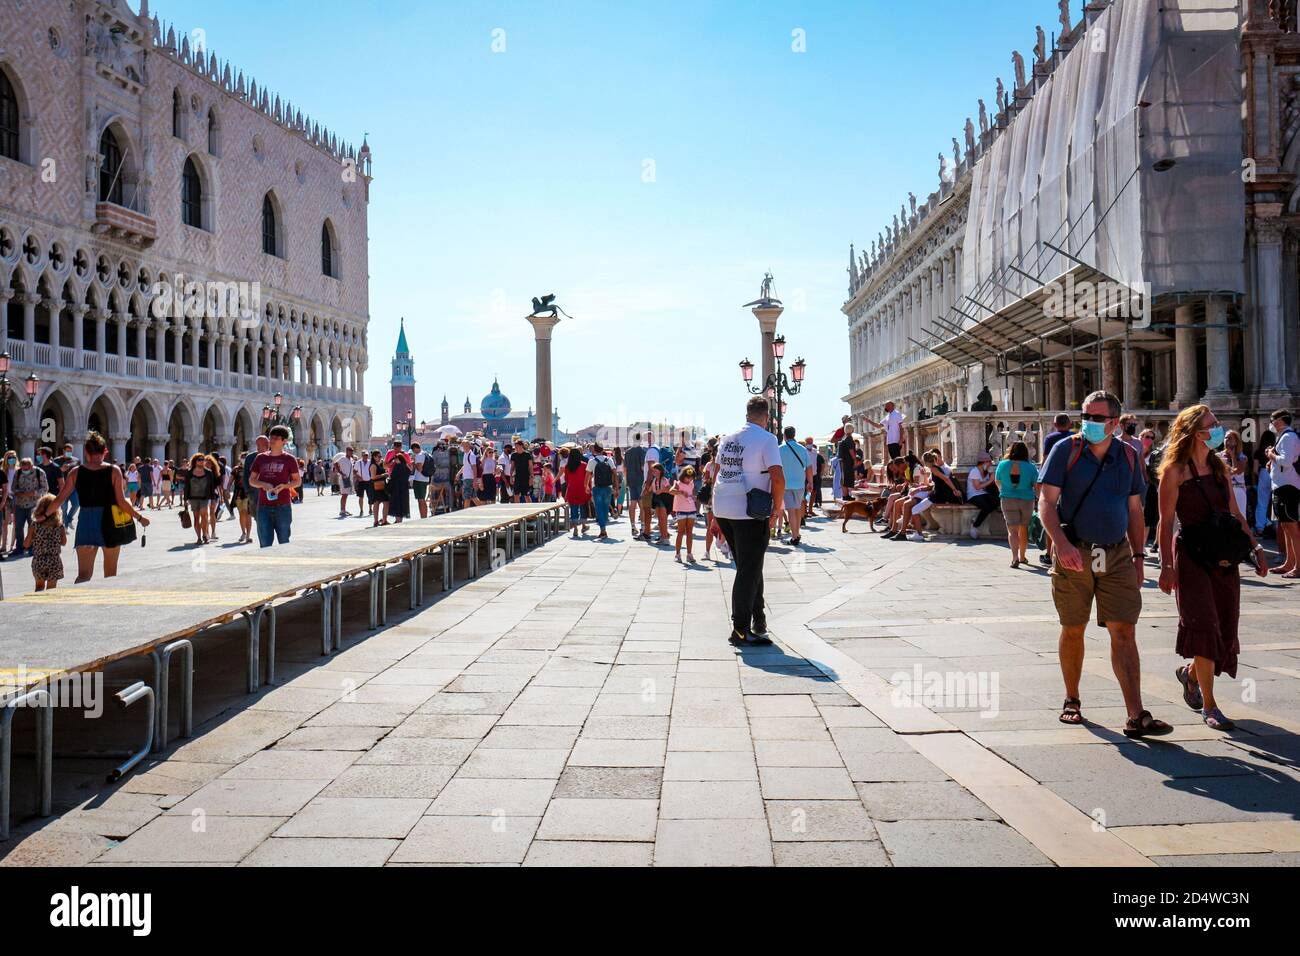 New normal tourism at Piazza San Marco (St. Mark's Square), Venice, Italy, during the coronavirus pandemic with tourists wearing face masks. Stock Photo